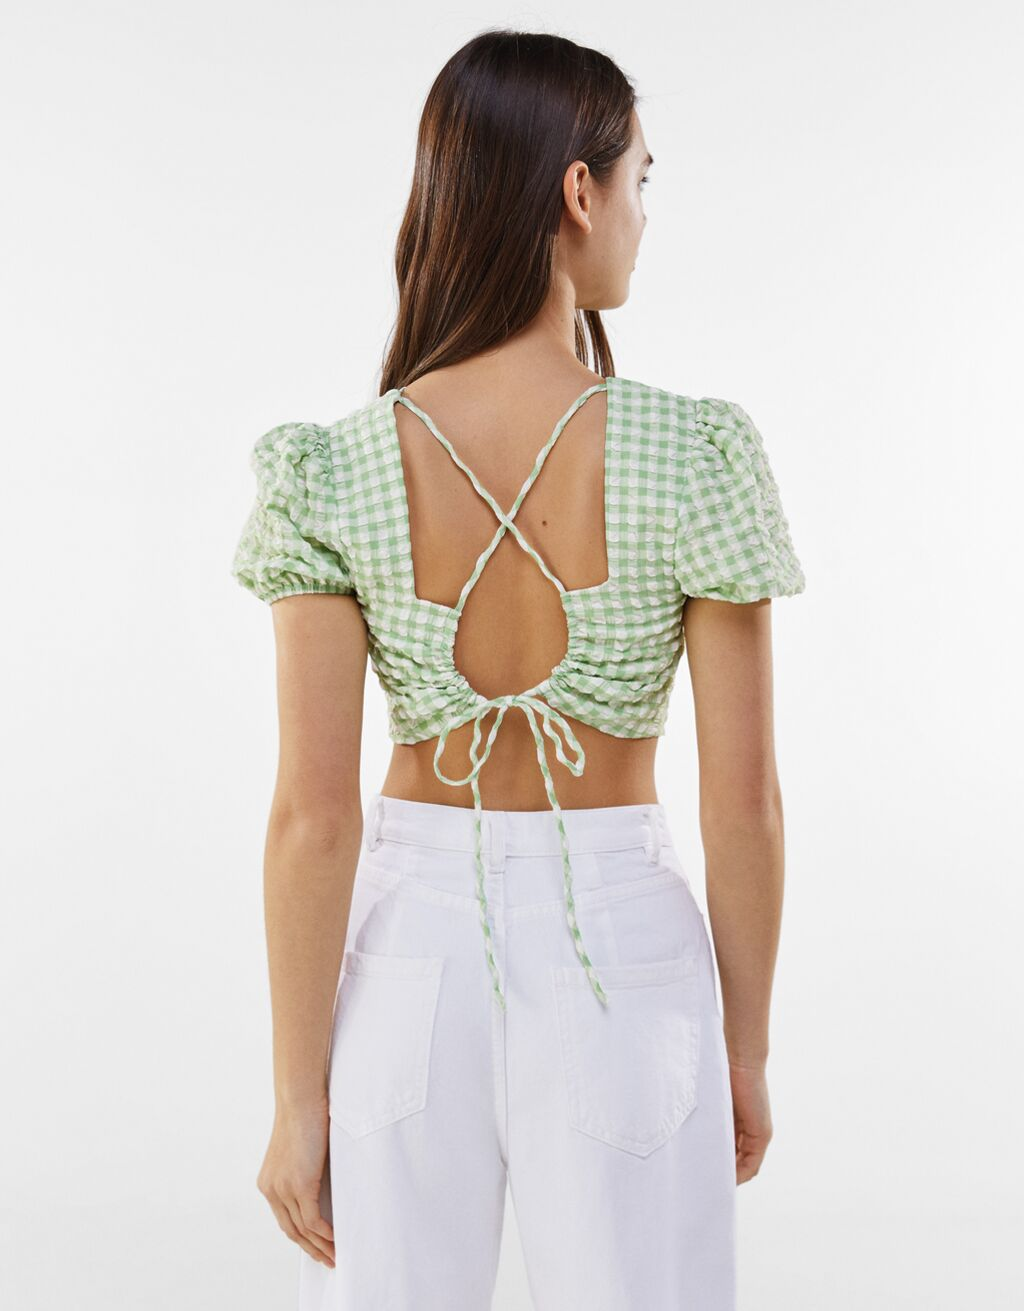 Woman wears Gingham blouse with tied detail at the back and white jeans and faces away from camera